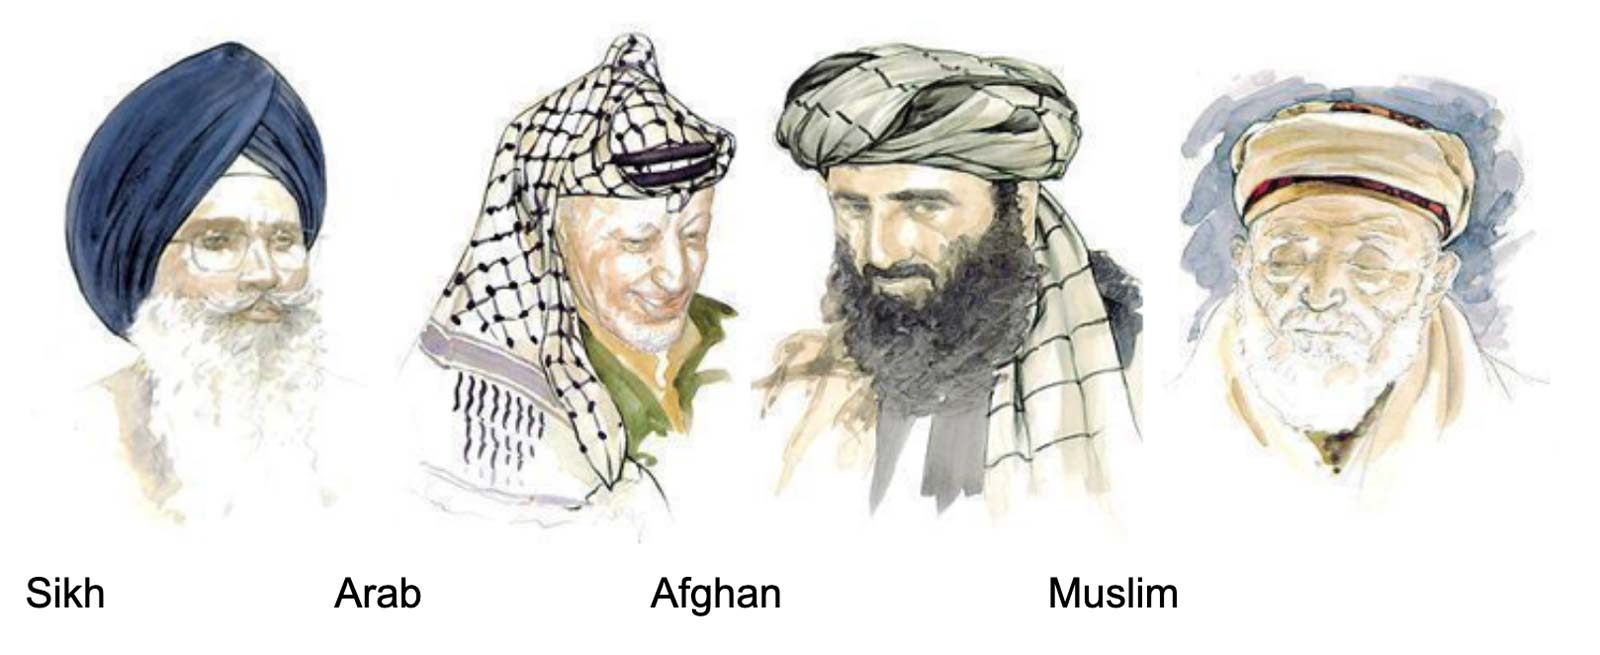 different types of religious turbans - sikh, arab, afghan, muslim